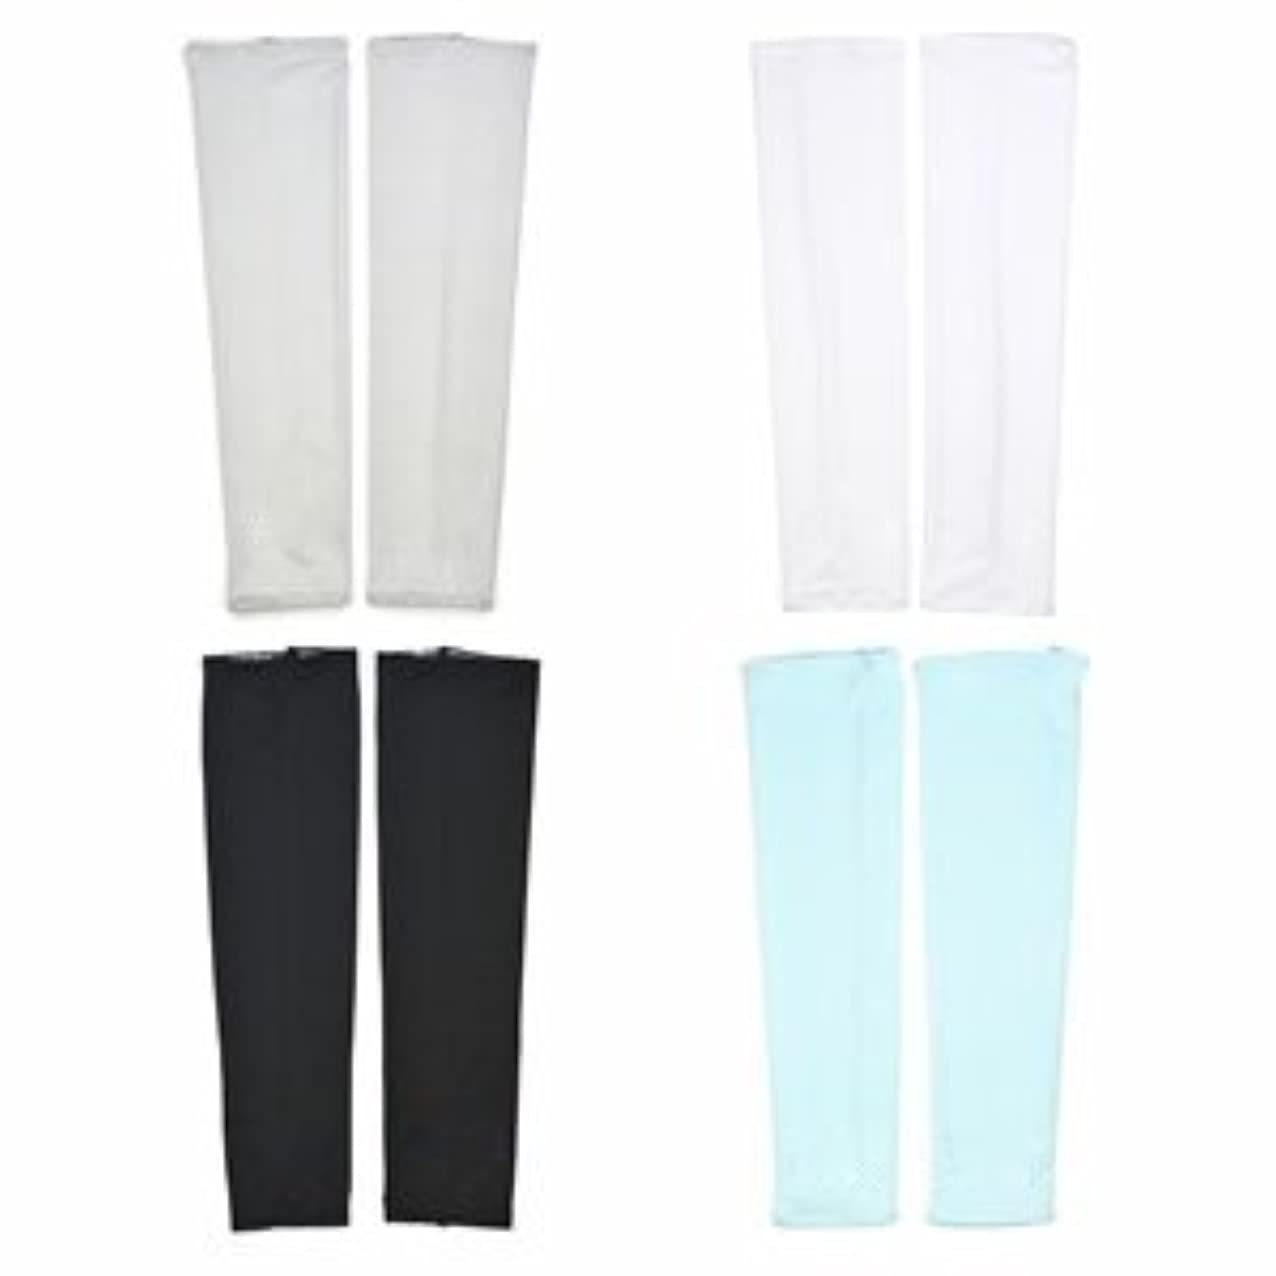 ホスト続けるブレーキCosmos Assorted Colour UV Protection Cooler Arm Sleeves 4 Pairs for Bike/Hiking/Golf (Black,White,Grey & Light Blue Colour)